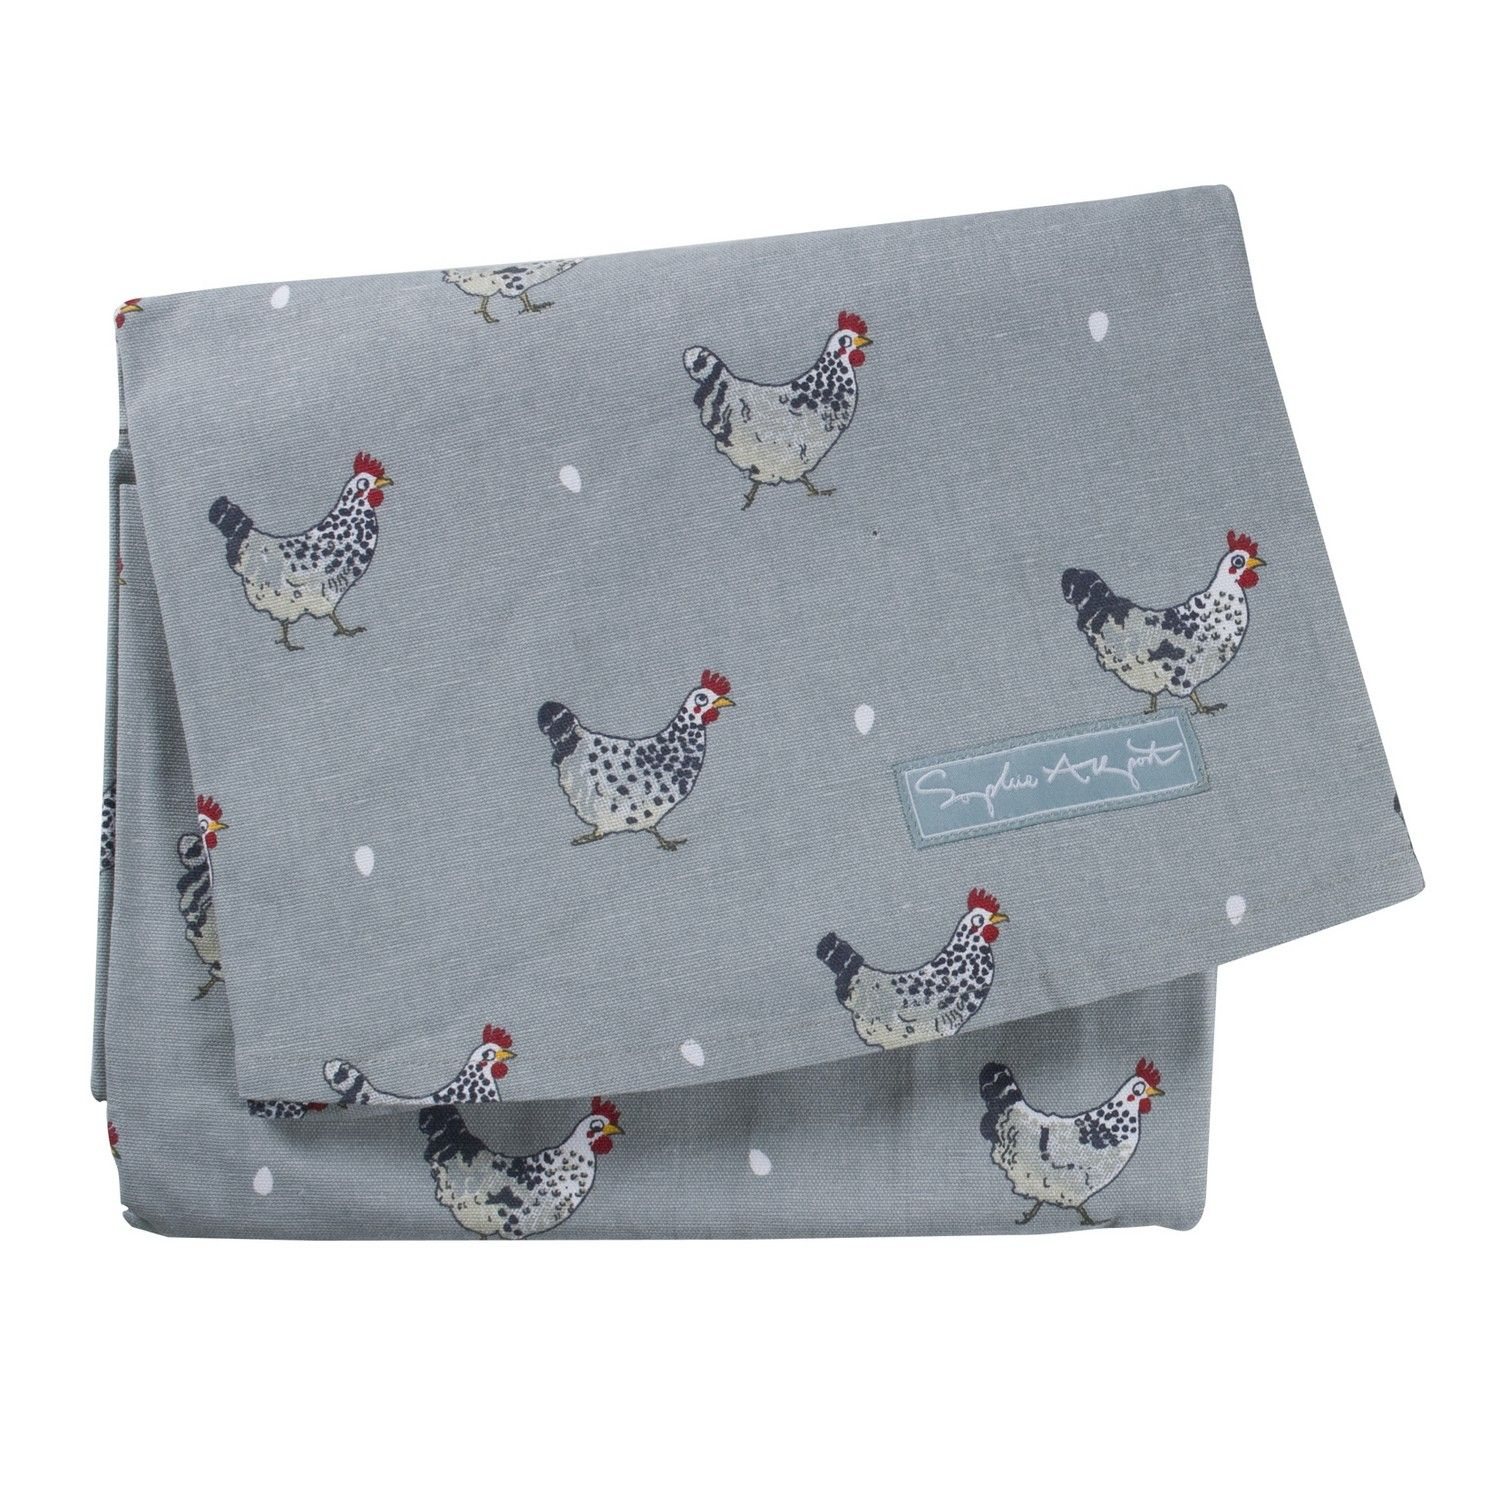 Circular Tablecloth - 'Chickens' from Sophie Allport